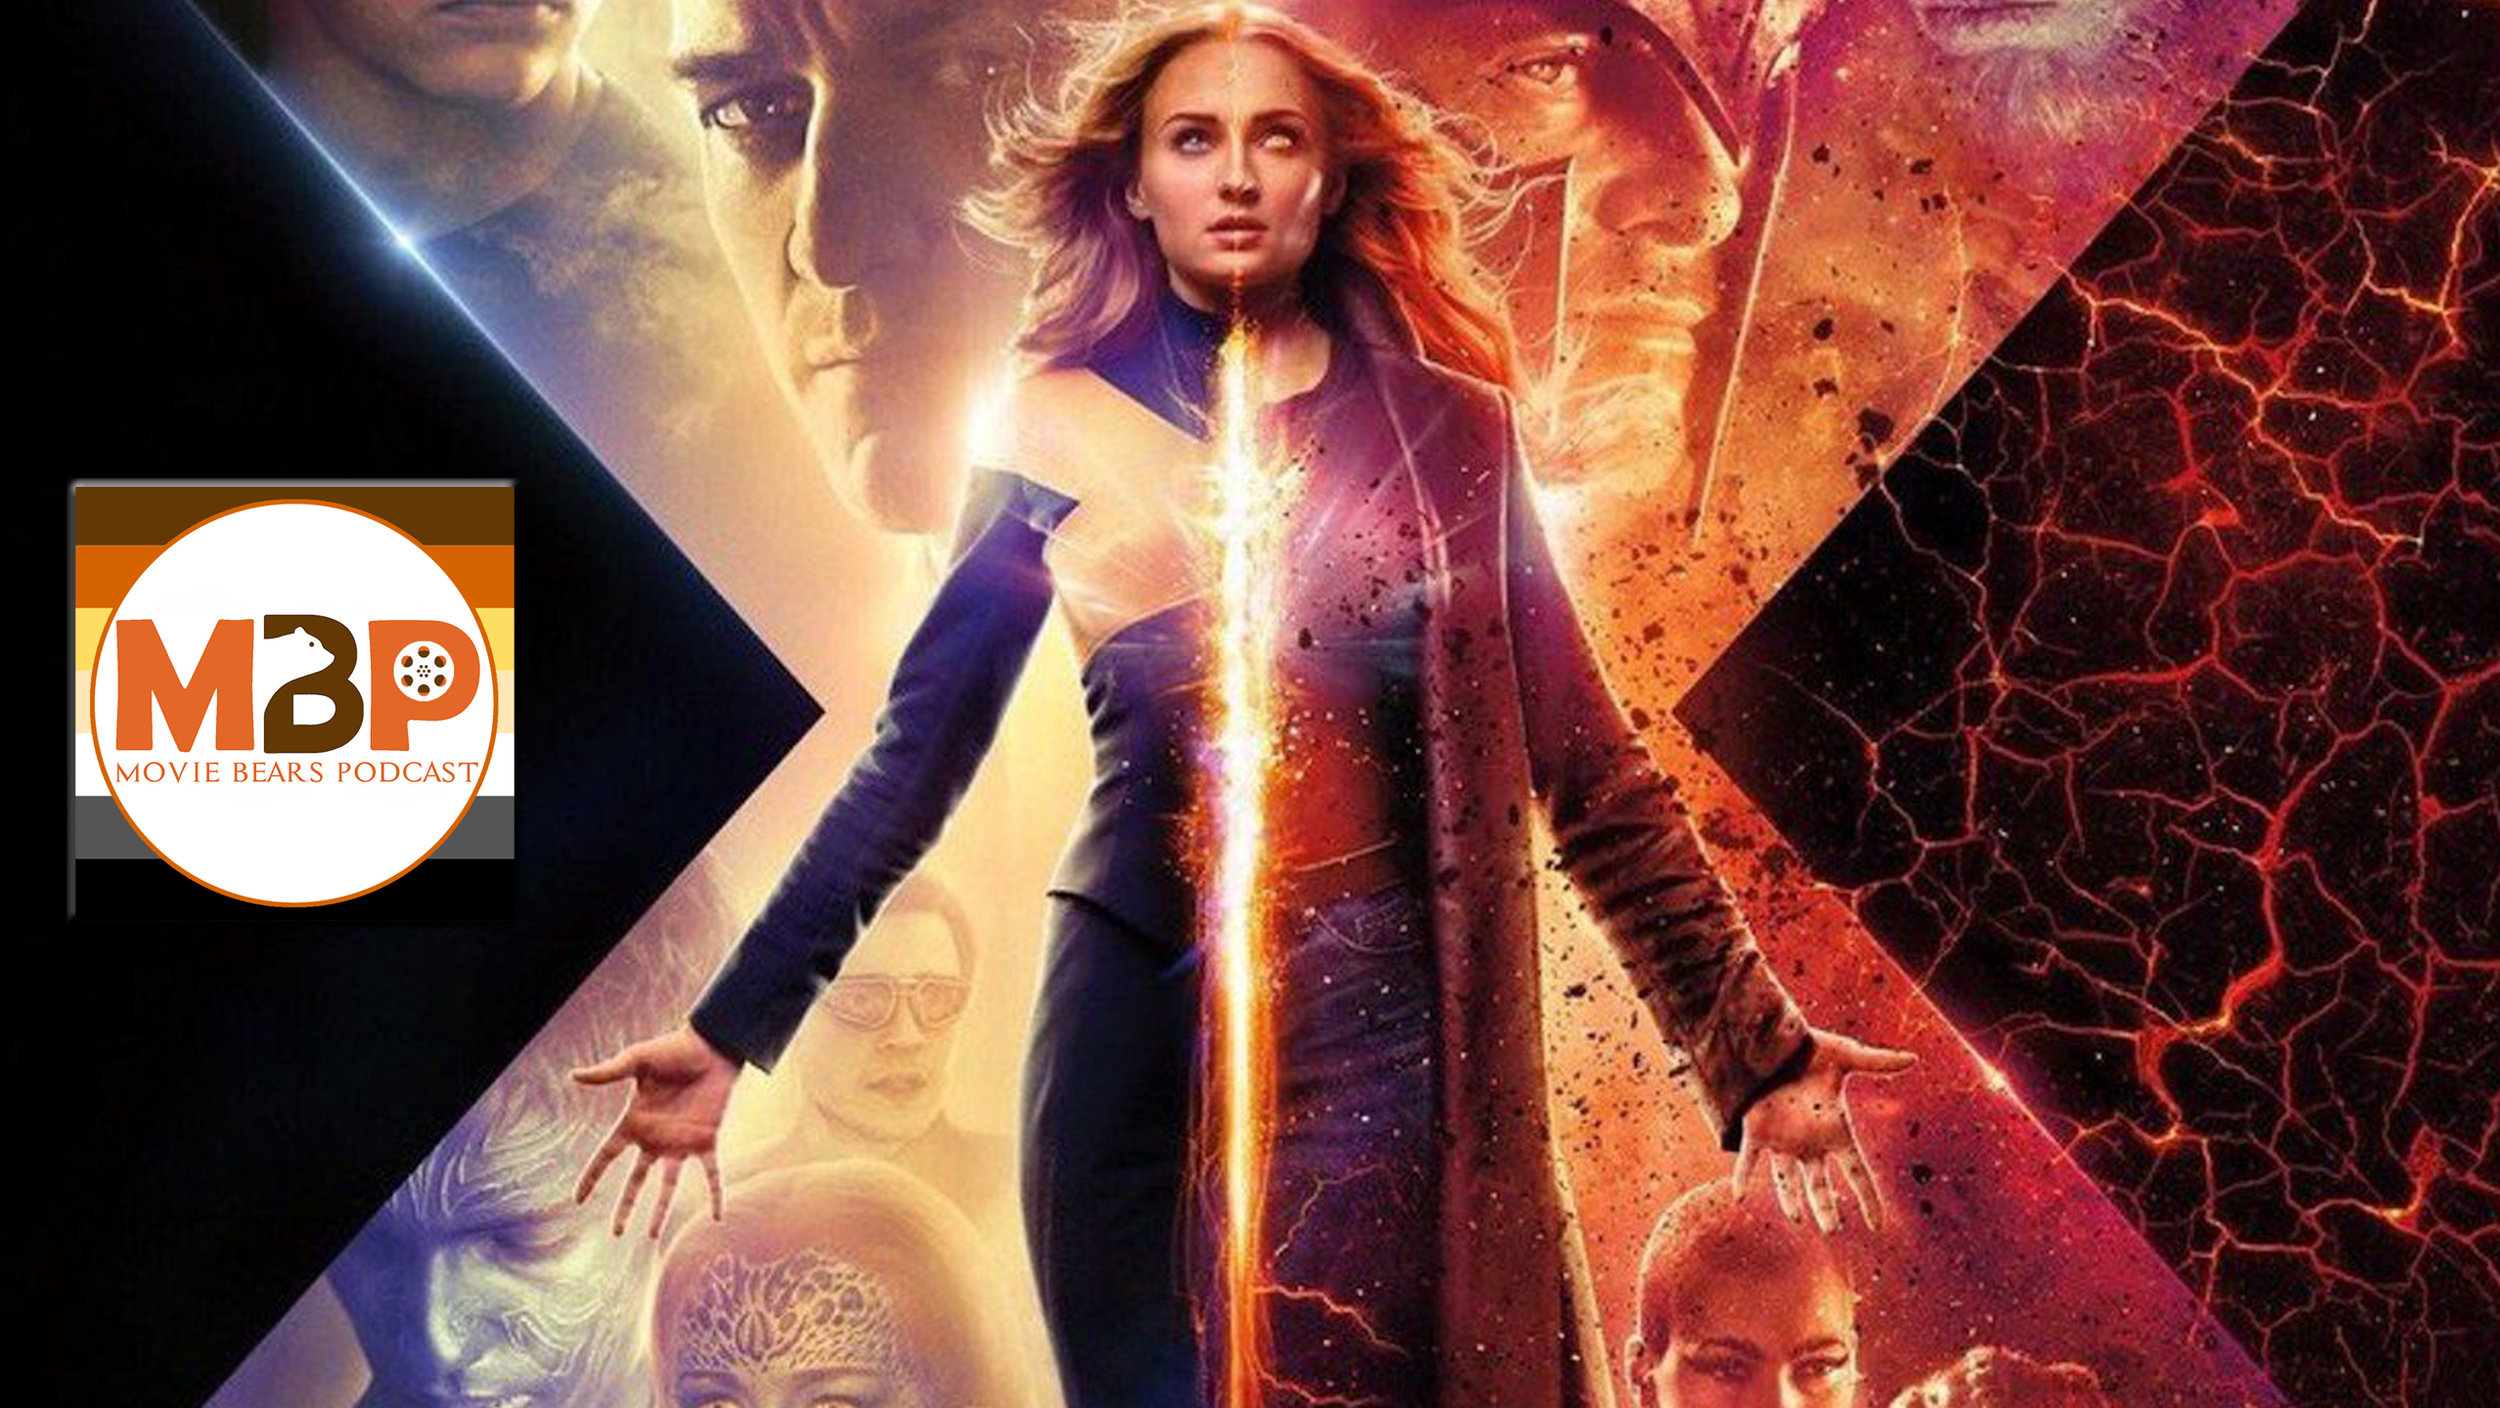 MBP e327 - 'Dark Phoenix' (6/13/19)    On this episode, we review 'Dark Phoenix' and try to decide if this latest X-Men film burns the franchise's legacy to the ground. Or does it breath new life into our favorite band of merry Marvel mutants? We'll be discussing this, as well as the latest in Star Trek and Batman news and a quick revisit of 'Rocketman'. We also read some live comments from our amazing listener friends.